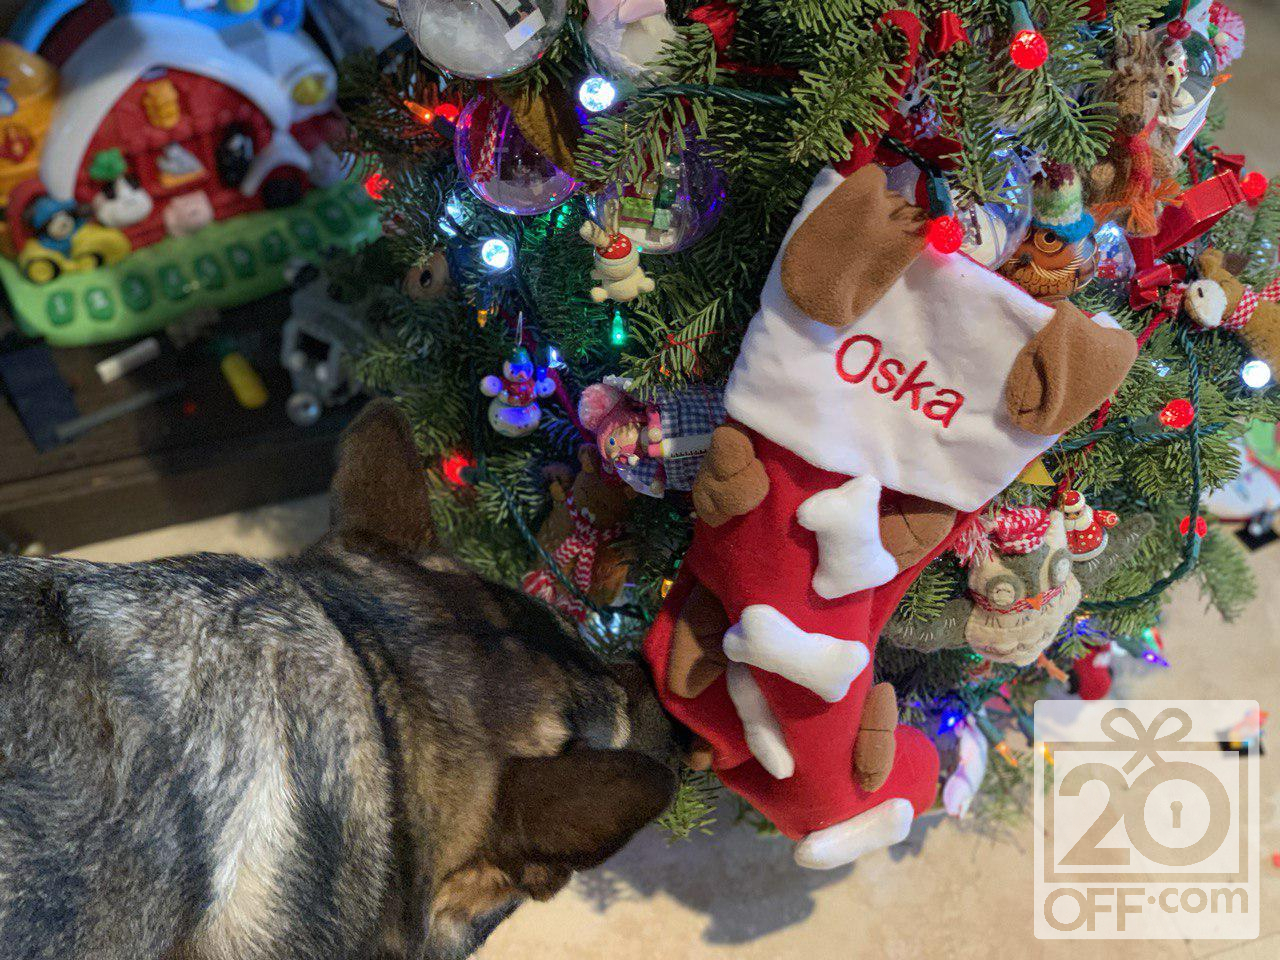 Personalization Mall Stockings for Pets